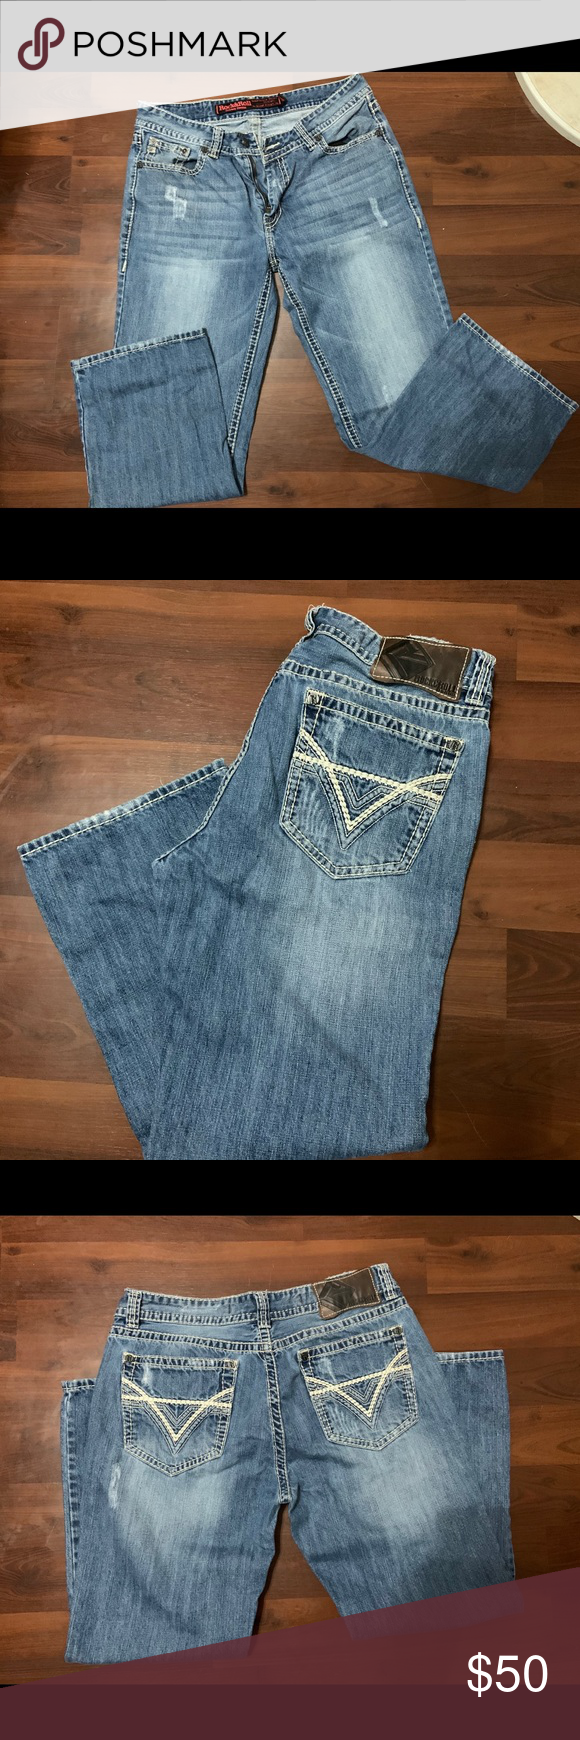 Rock and roll men's jeans Worn twice Length 30 Jeans Bootcut #rockandrolloutfits